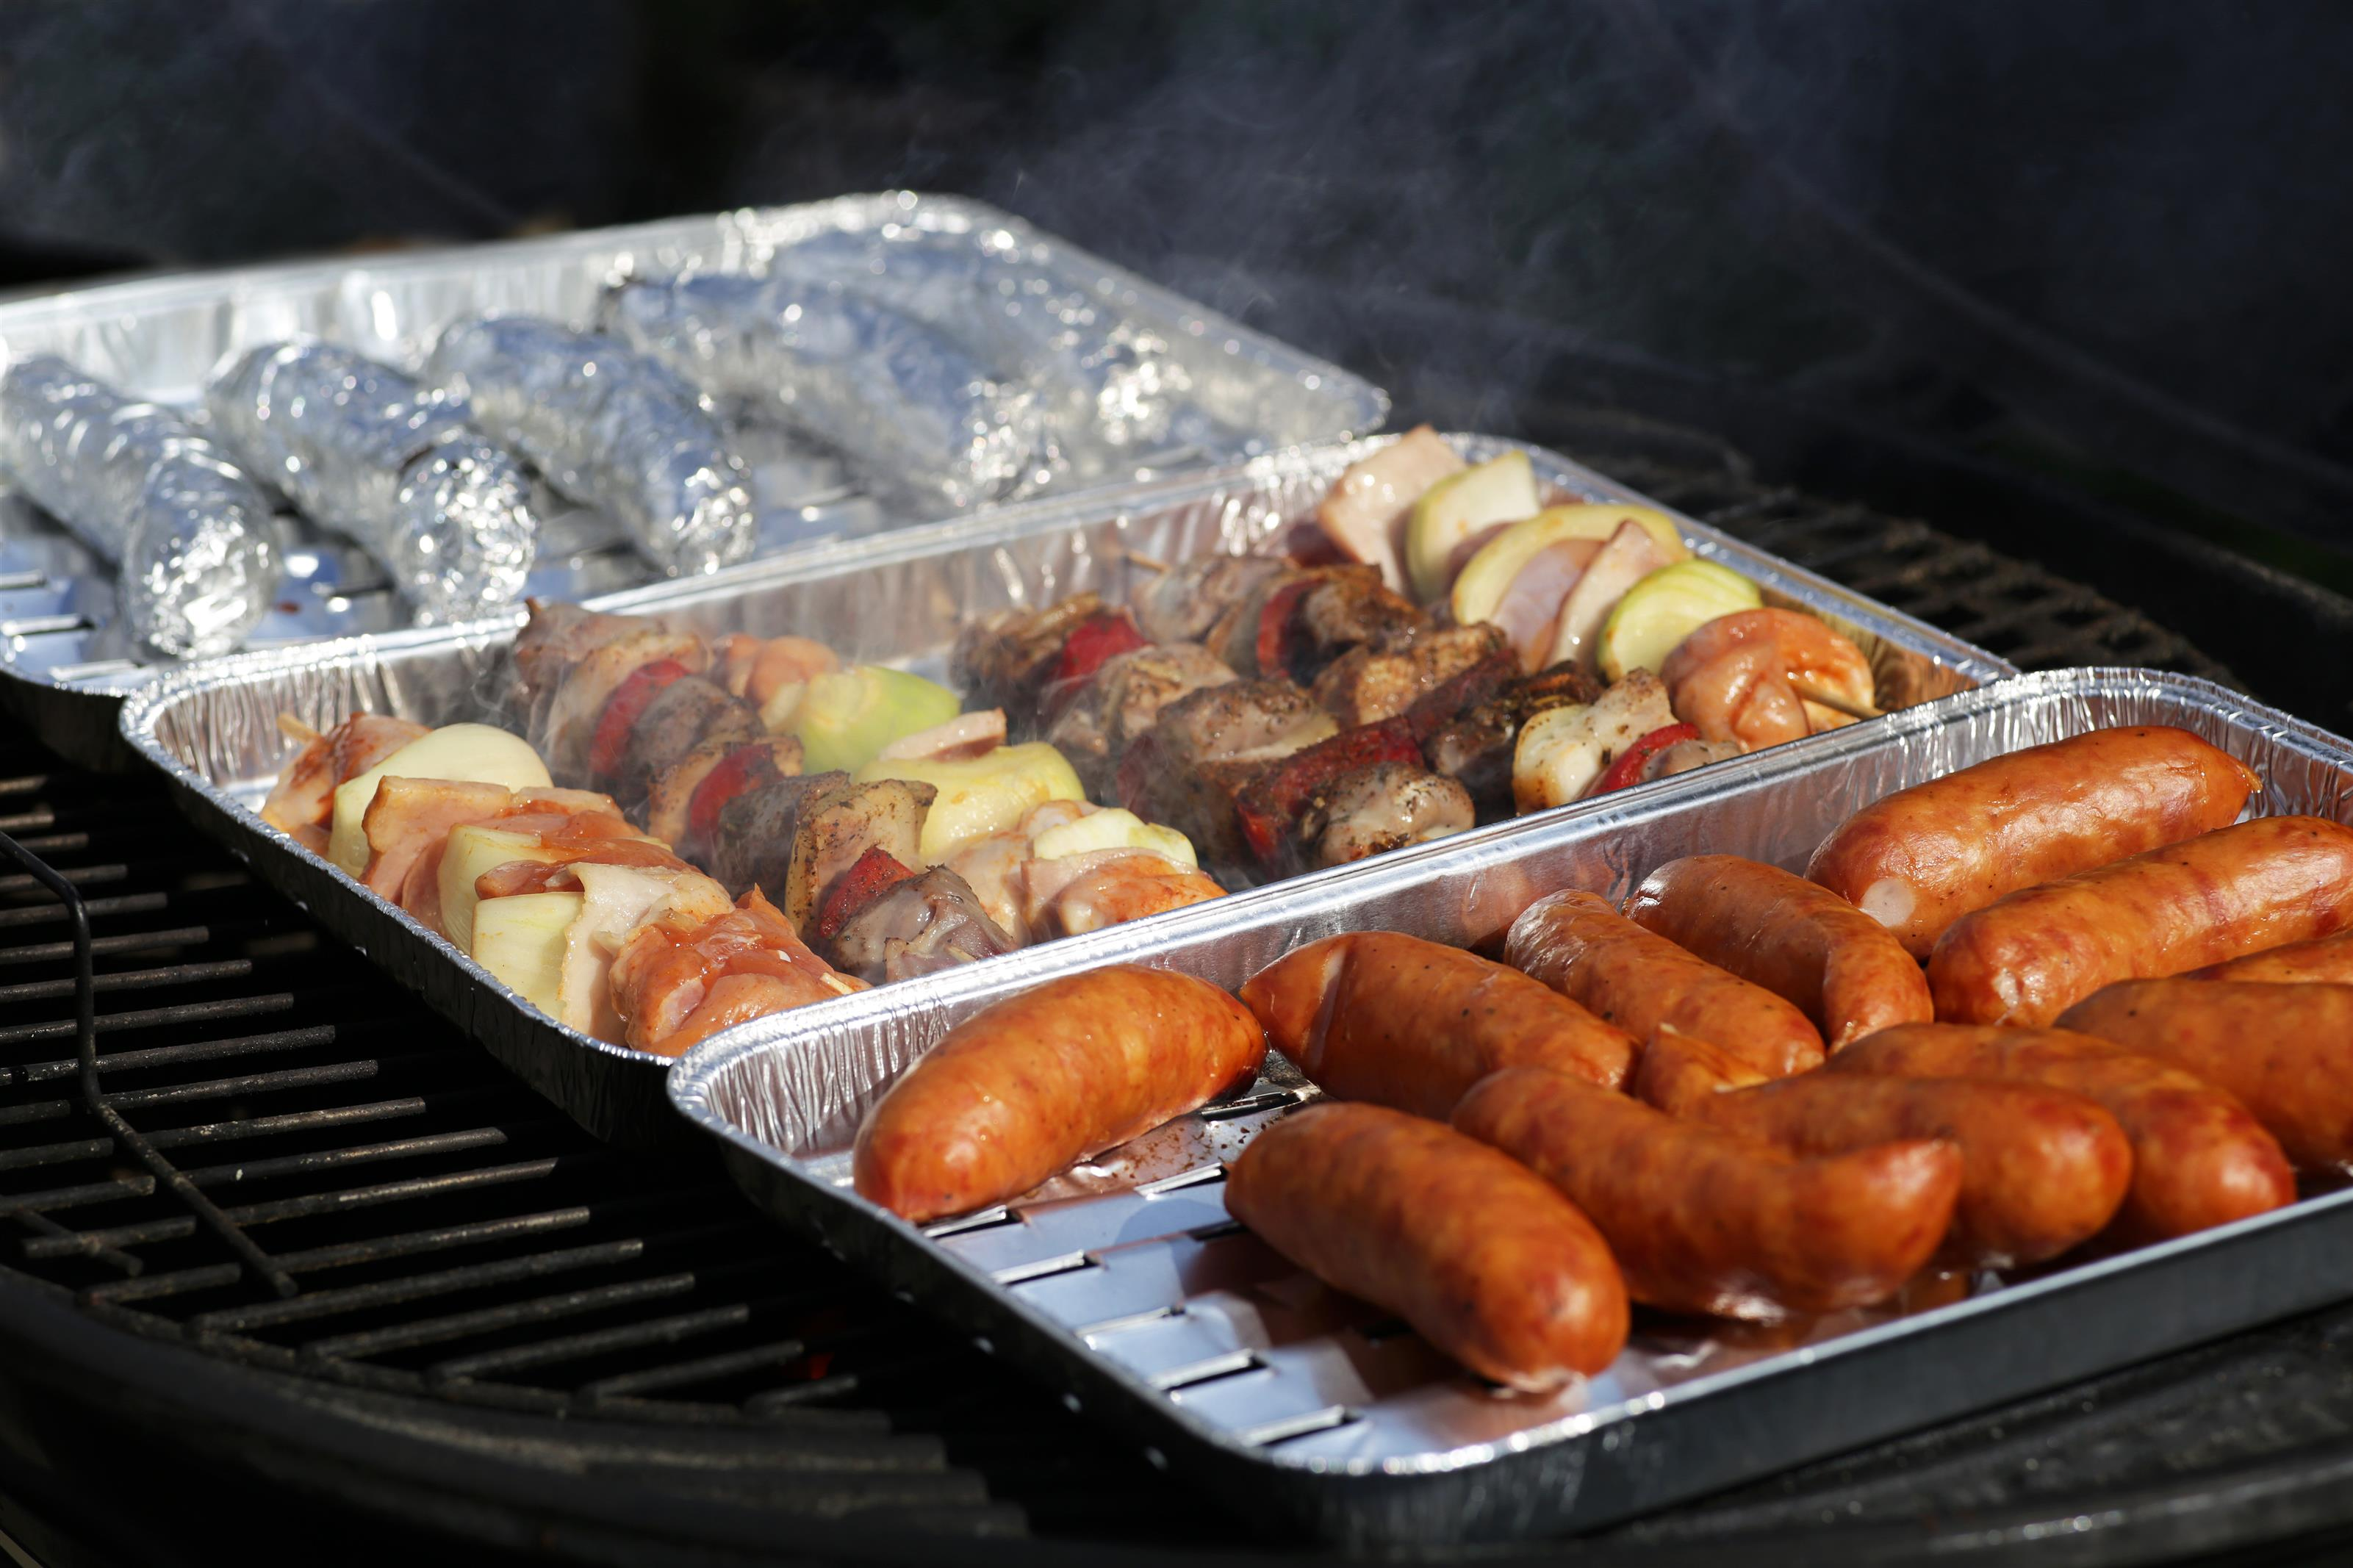 veggie and steak kabobs and sausages on disposable aluminum trays